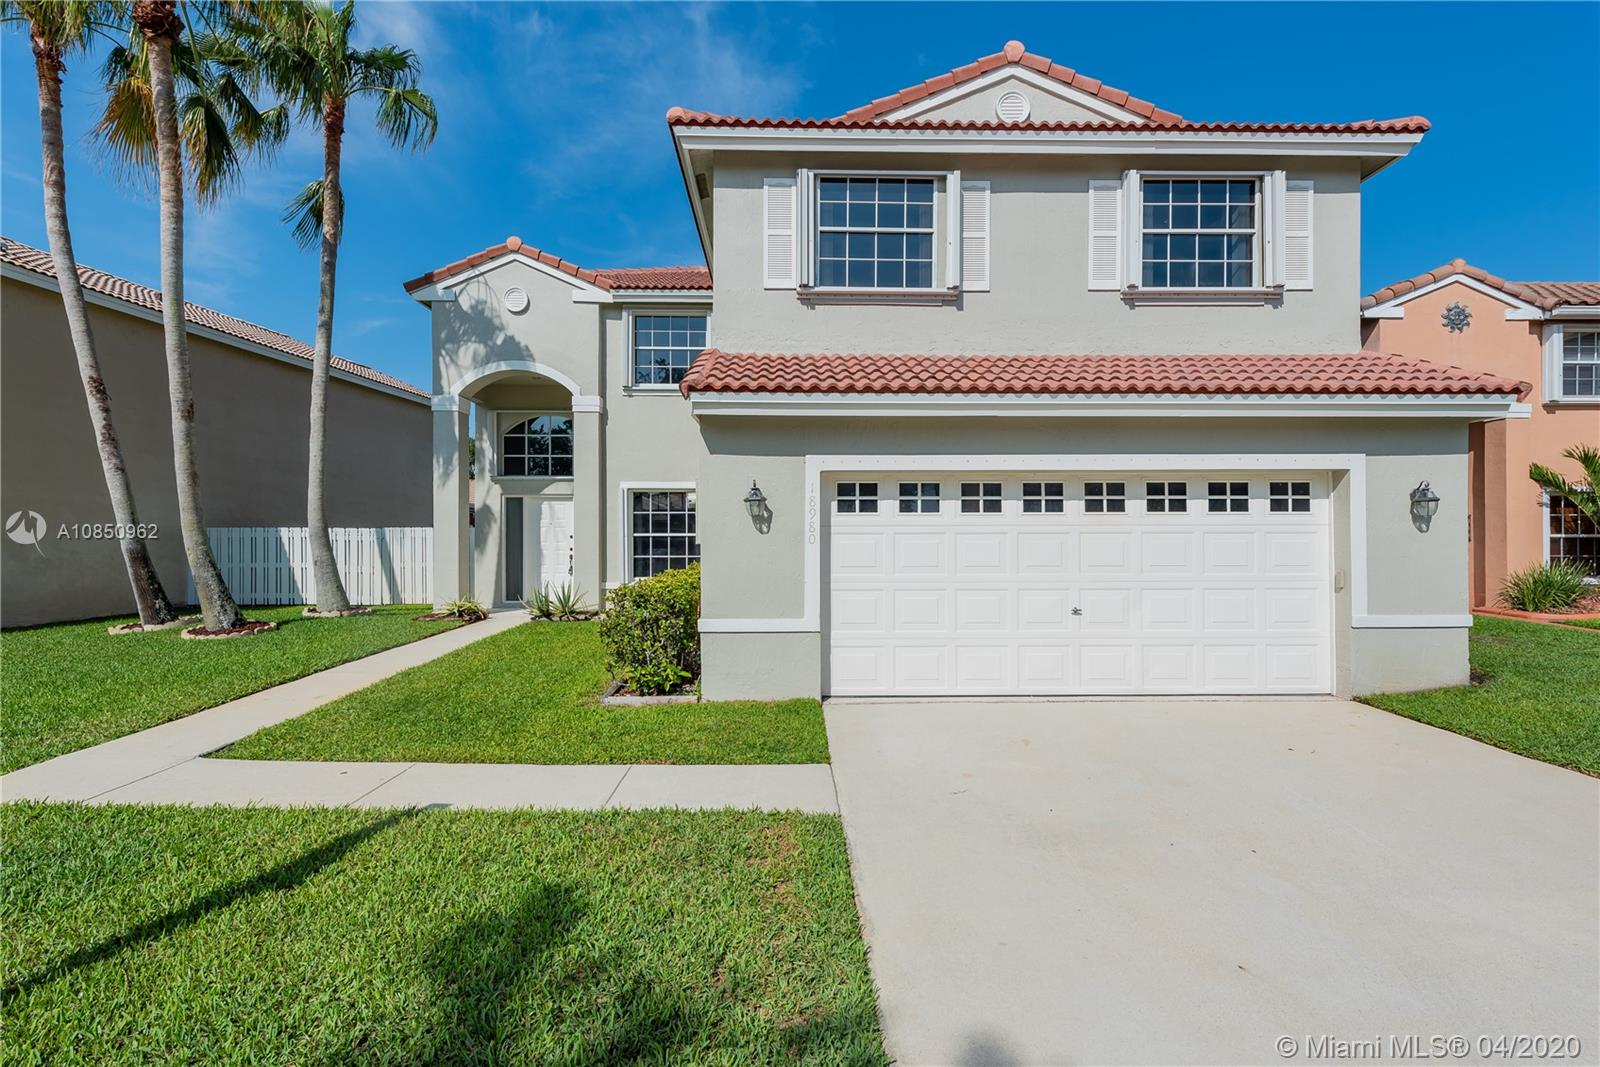 Contemporary, 4 Bed, 2.5 Bath ***CHELSEA MODEL HOME*** in Sought After Kensington@Chapel Trail. Featuring: Open Kitchen, Cherry Cabinetry, SS Appliances, Breakfast Bar, Spacious 2nd FL Master Suite, Large Walk-in Closet, His & Hers Vanities, Soaking Tub, Freshly Painted Interior, Laminate Wood Flooring, NEW Carpet in Bedrooms, Covered Patio, Accordion Shutters ***NEWER ROOF, A/C & WATER HEATER*** Fenced Grounds and Plenty of Room for a Pool/Play.  Convenient to Shopping, Restaurants, Entertainment, Travel & TOP-RATED SCHOOLS.  Residents Enjoy: Rose Price Municipal Park: Pool, Baseball/Softball, Basketball, Tennis, Playground; Chapel Trail Nature Preserve: Walking Trail, Wildlife, Flora & Fauna; Chapel Trail Walking & Bike Paths.  HOA Includes Cable & Internet. Call Us Today!